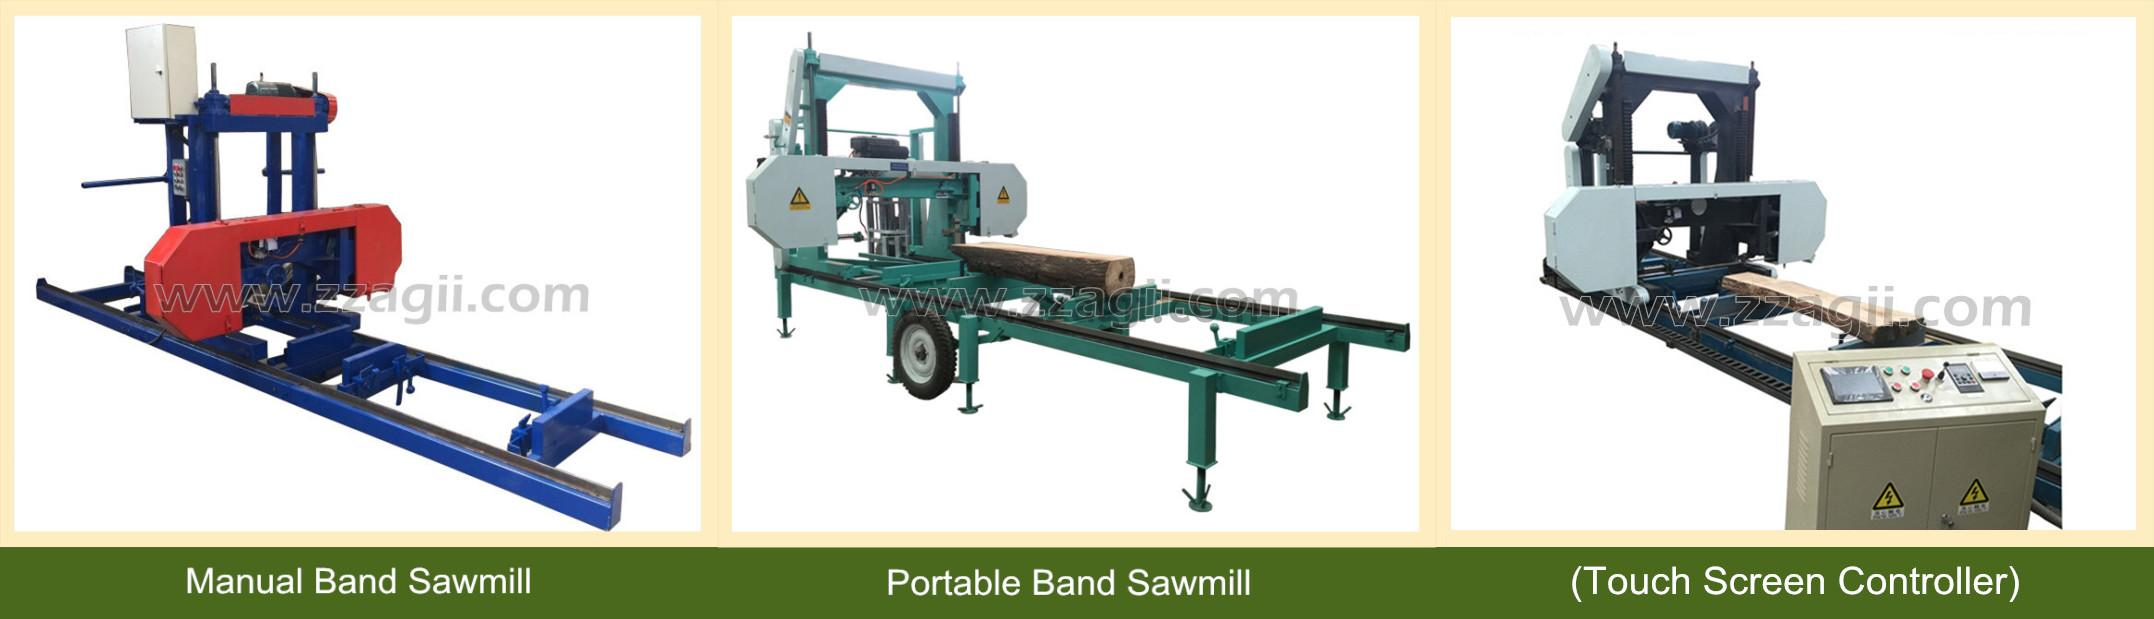 Automatic Industrial Wood Sawmill for wood logs cutting